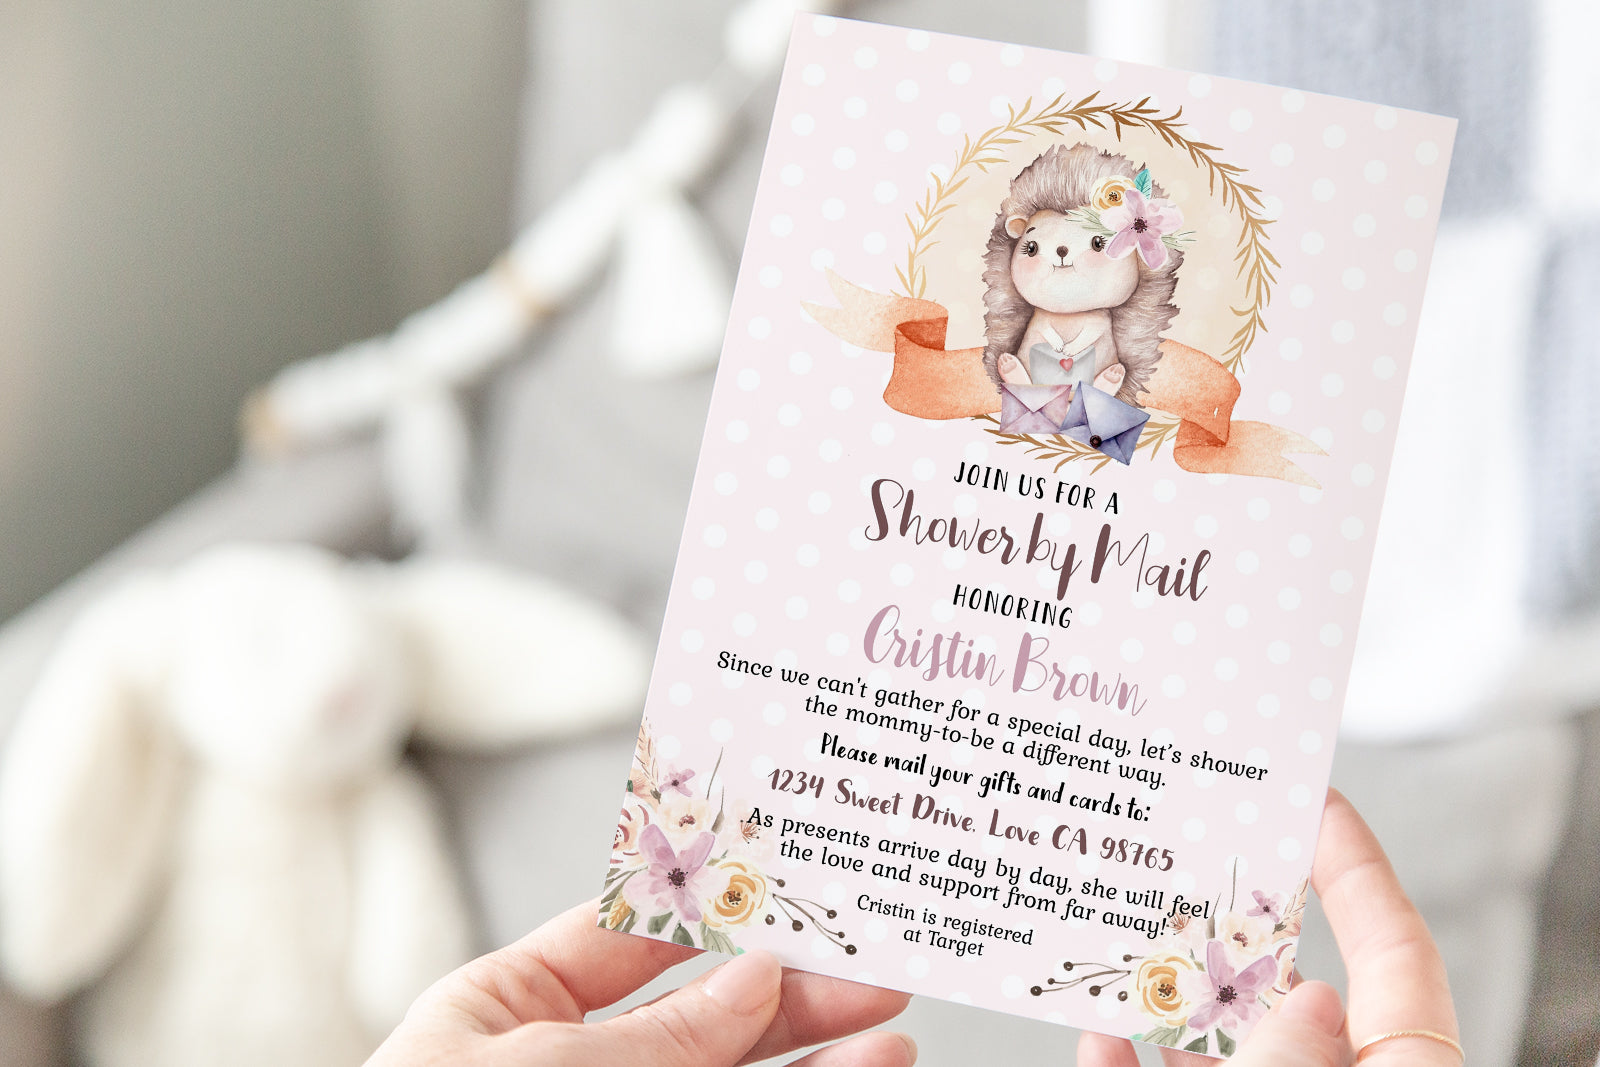 Hedgehog EDITABLE Shower By Mail Invitation | Woodland Theme Girl 47B